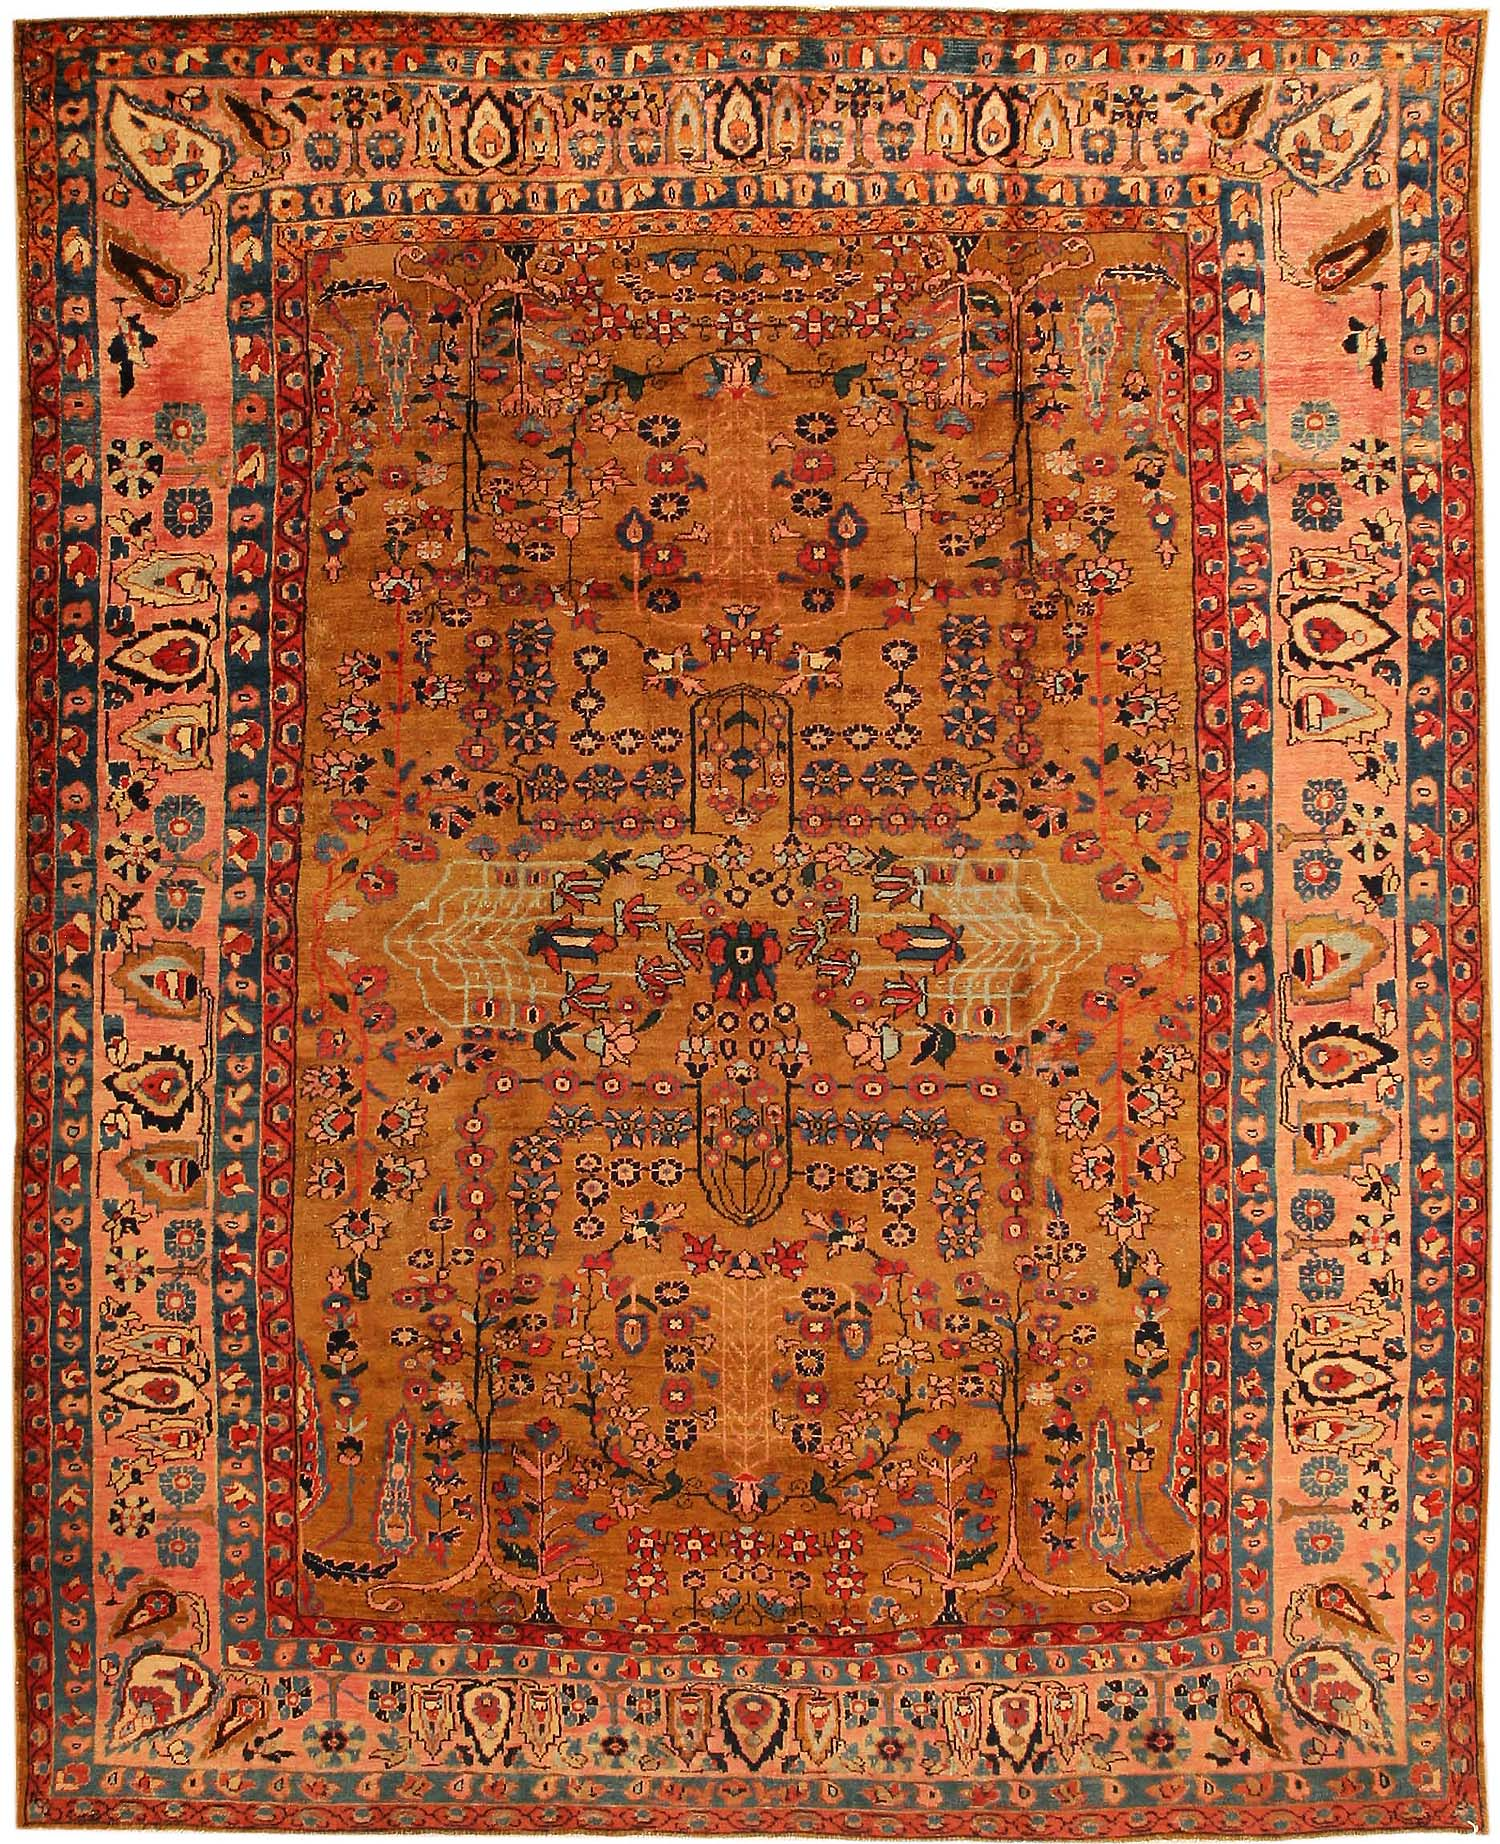 A Mystic Forest Of Brown And Gold Hues, This Sultanabad Rug Exhibits The  Height Of